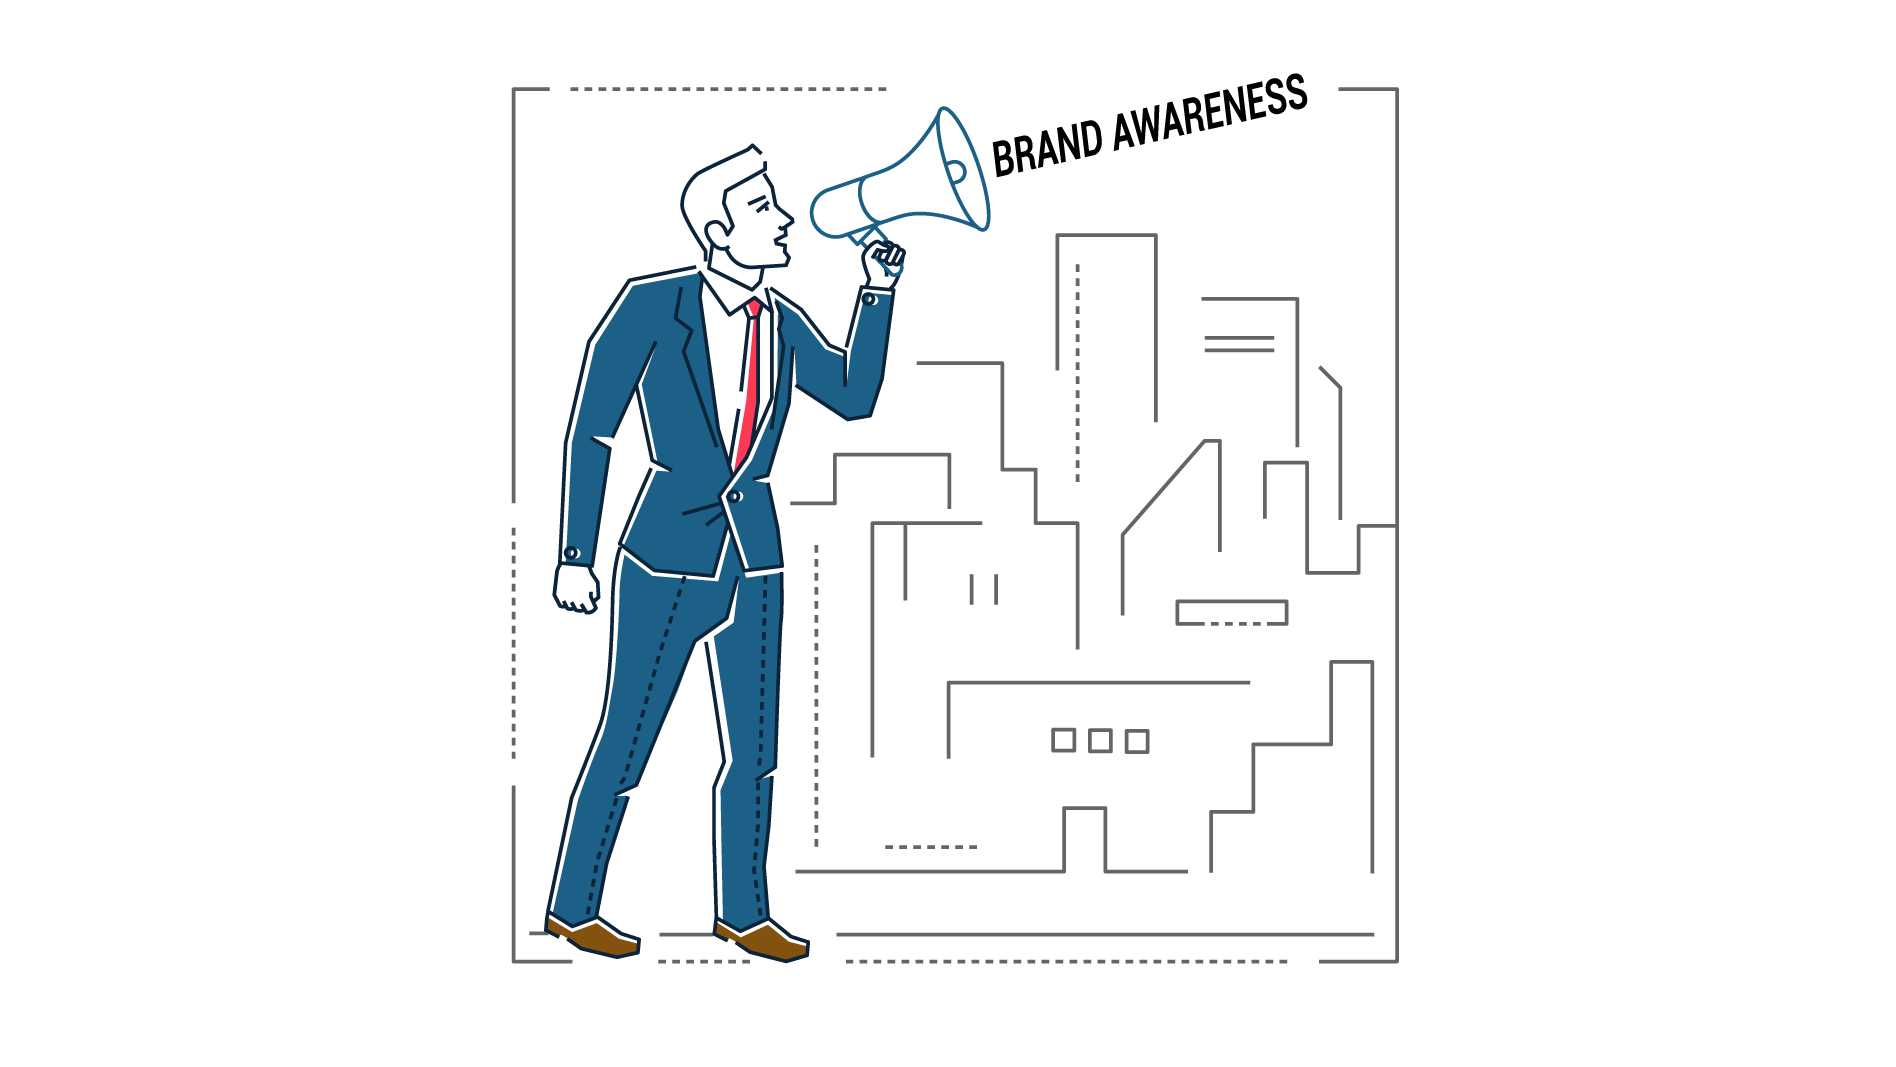 brand awareness significato